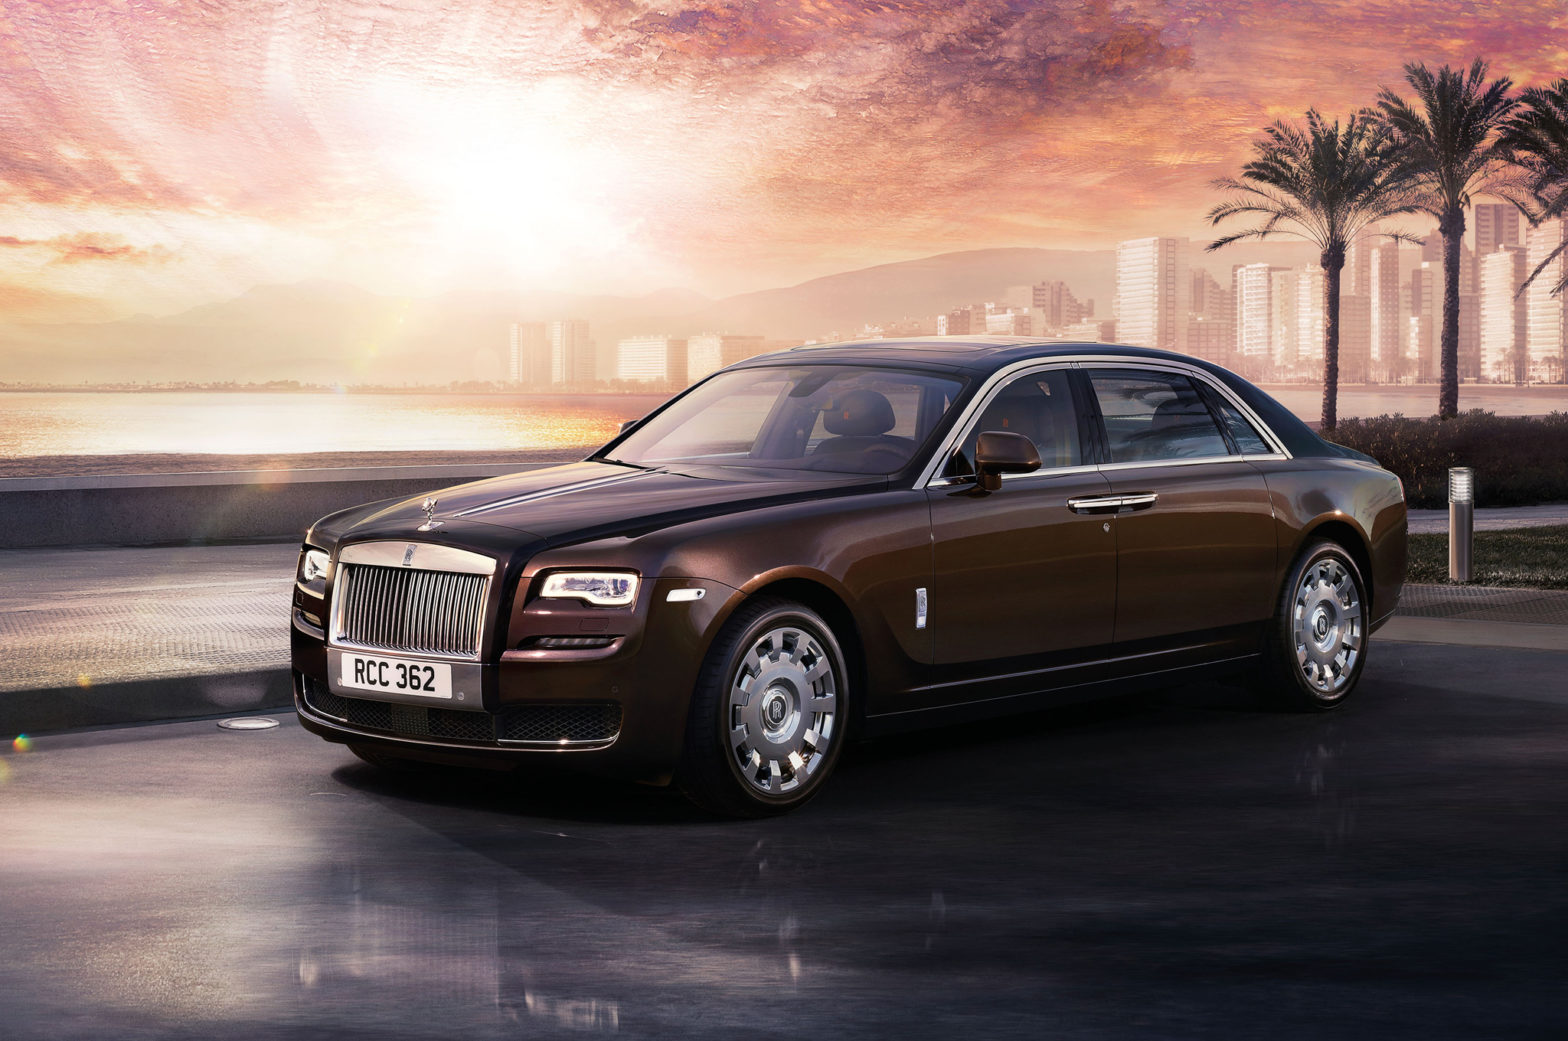 rolls royce car rental dubai